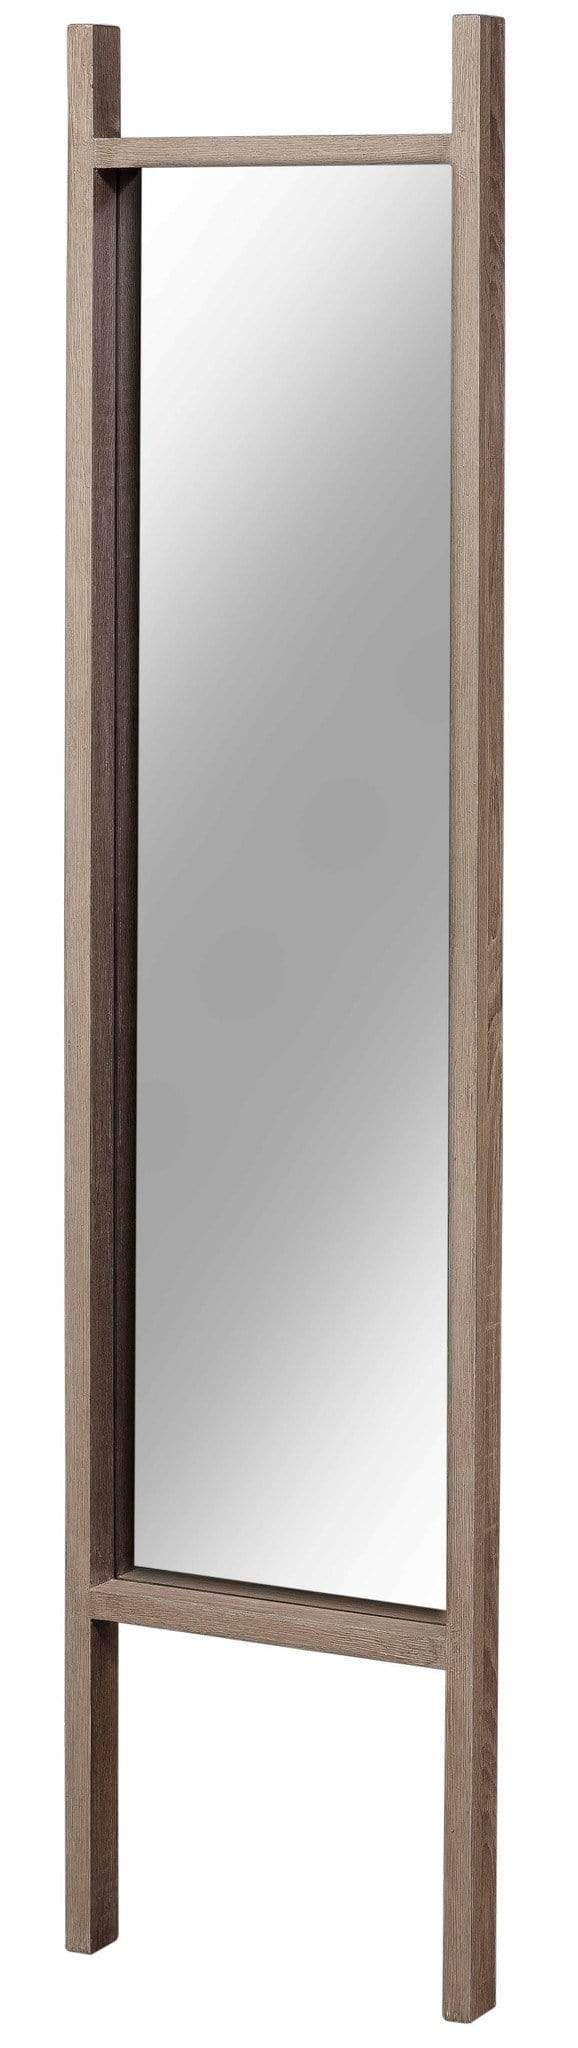 elevenpast Mirrors Full Length Standing Mirror